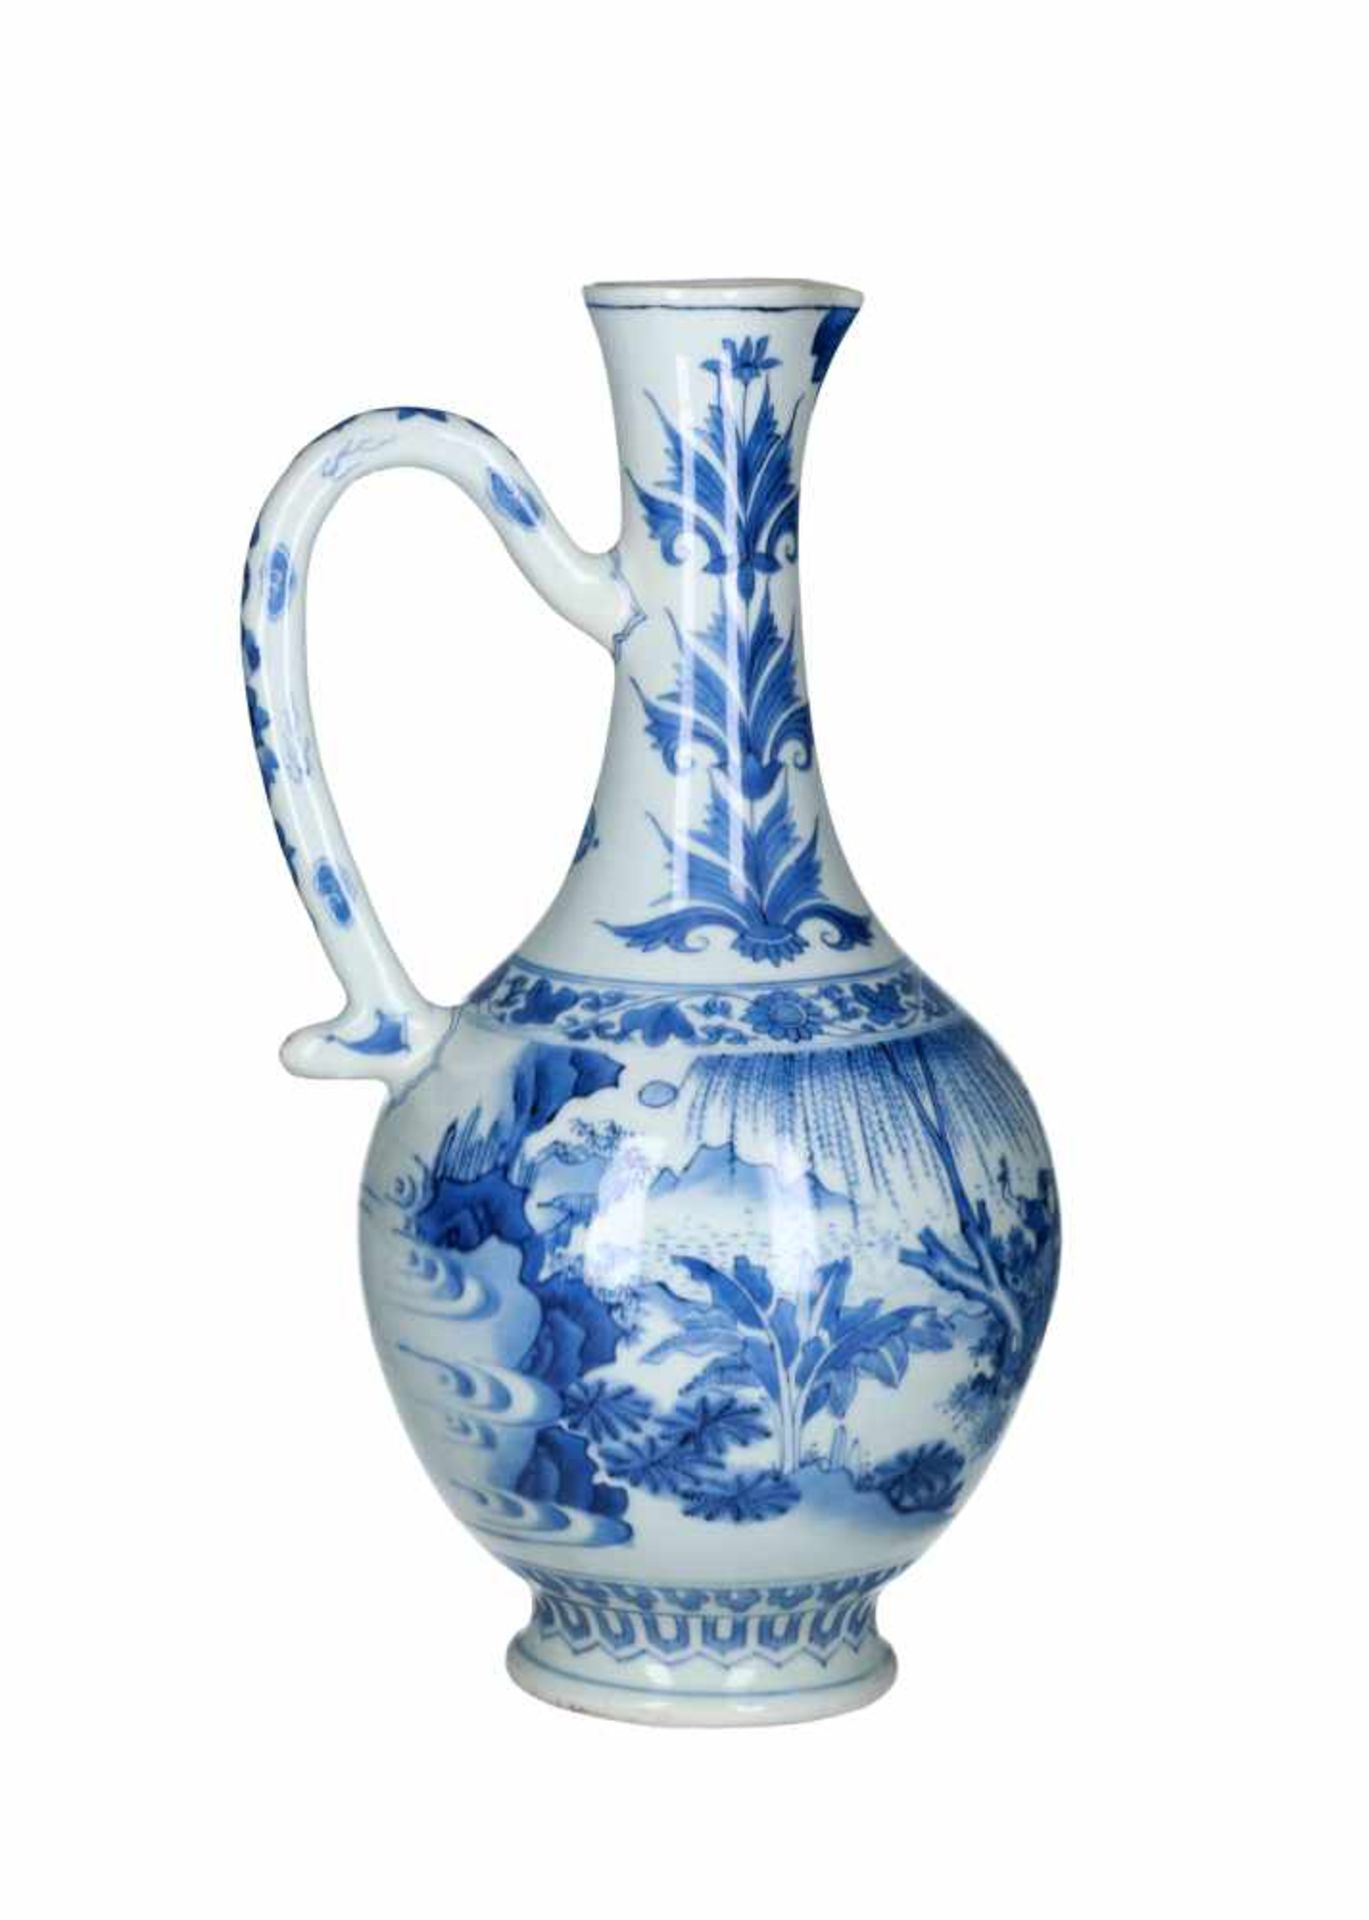 A blue and white porcelain jug, decorated with figures, a river landscape and flowers. Unmarked. - Bild 2 aus 9